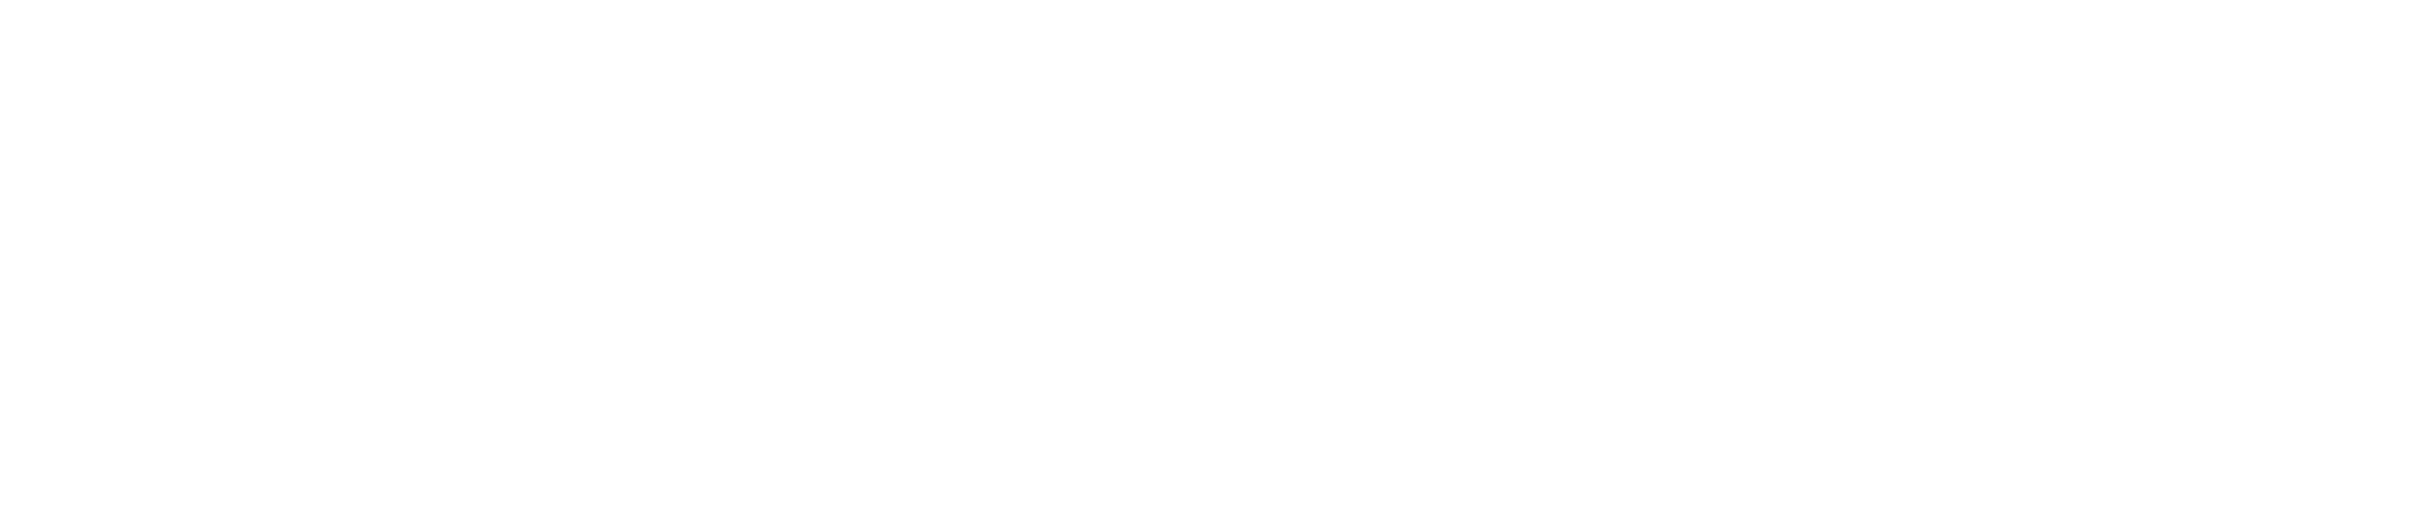 SERIES-003-WHITE TEXT-2.png